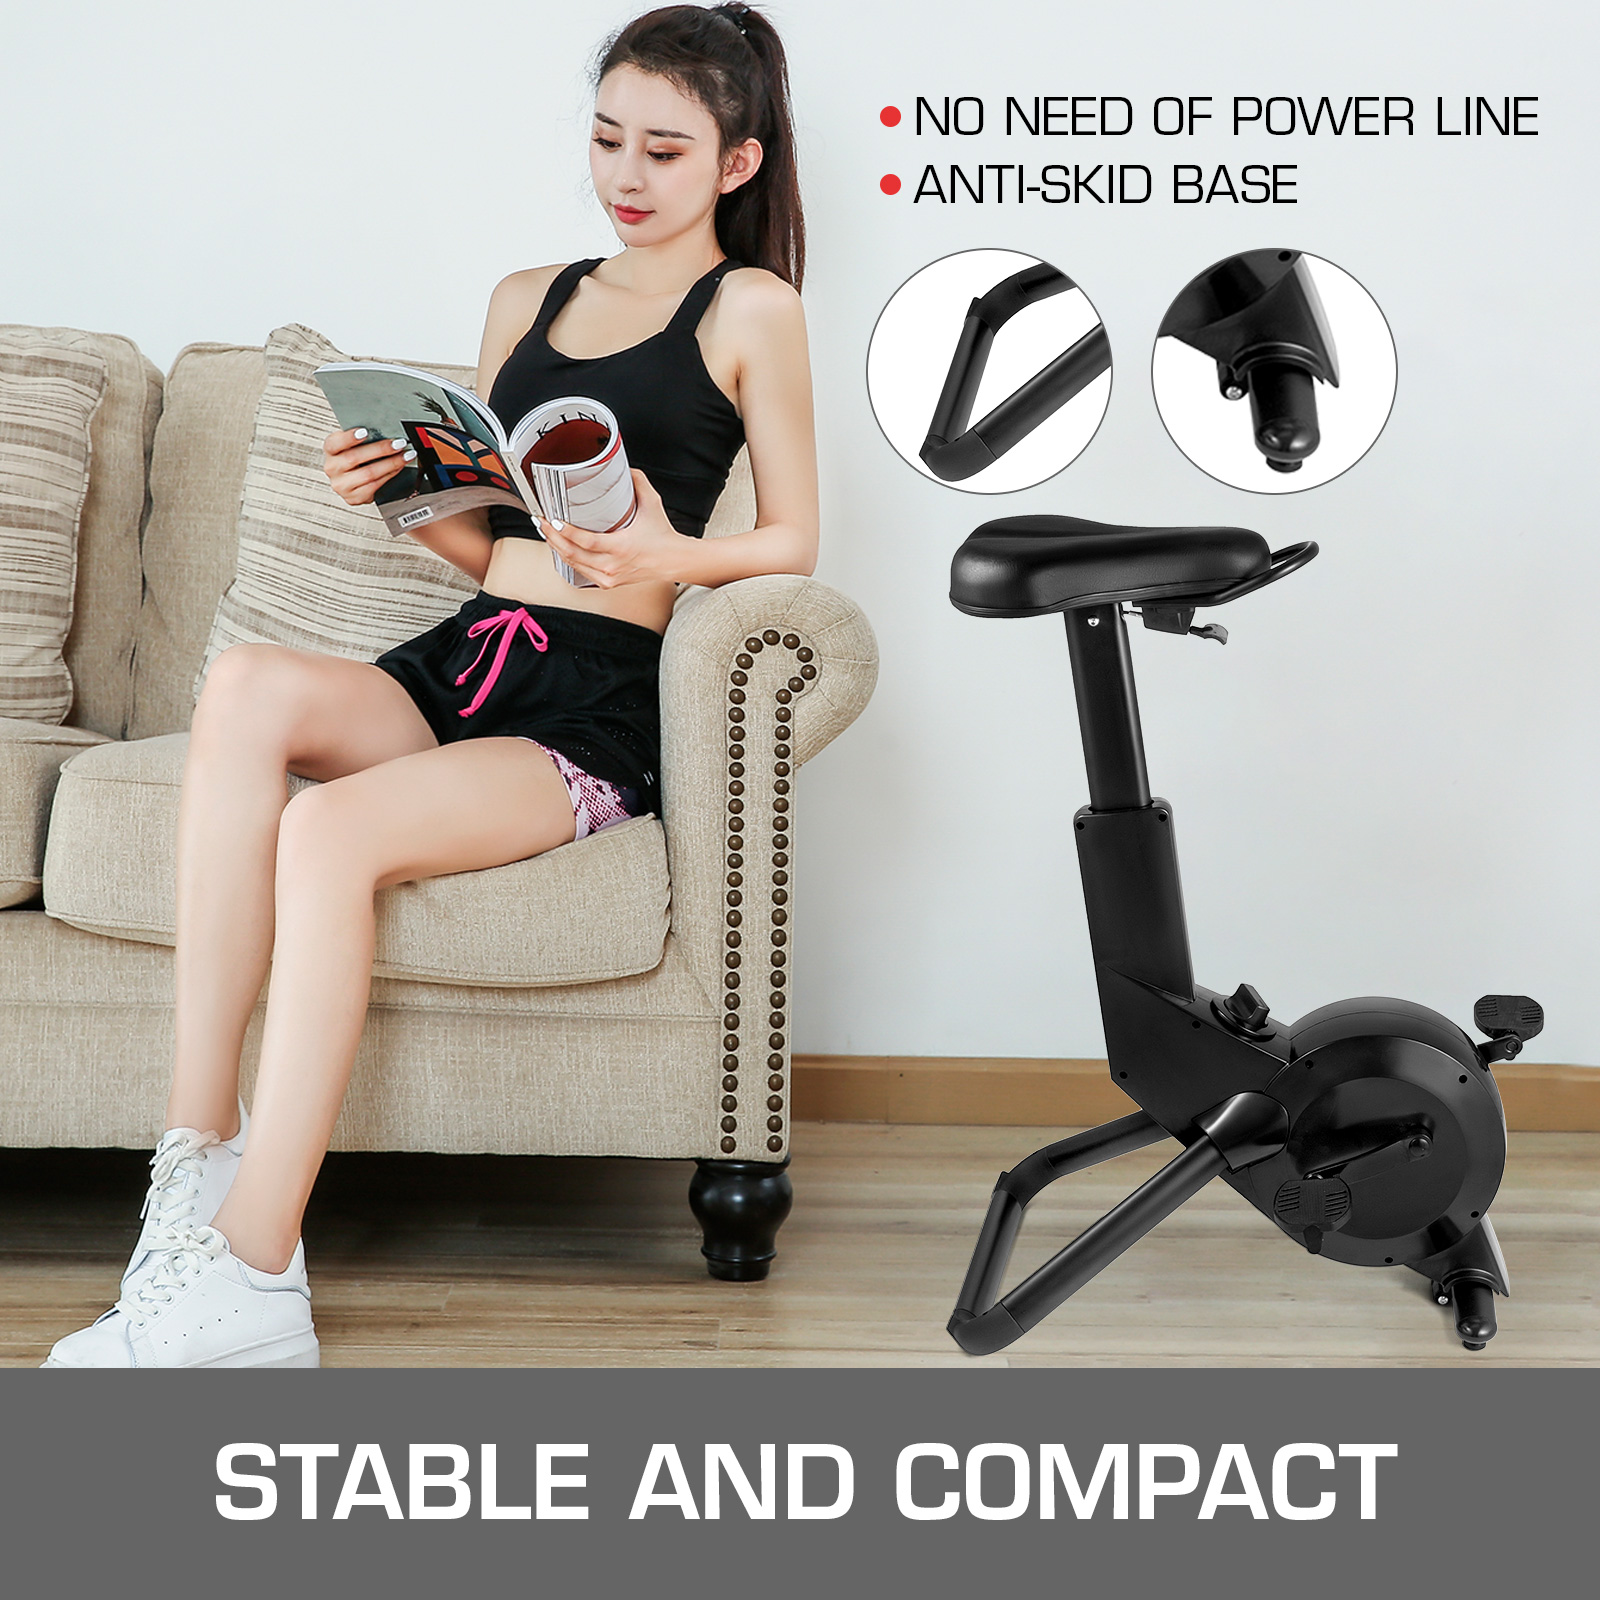 Multi-style-Magnetic-Exercise-Bike-office-Bicycle-under-Desk-Fitness-Cardio miniature 101